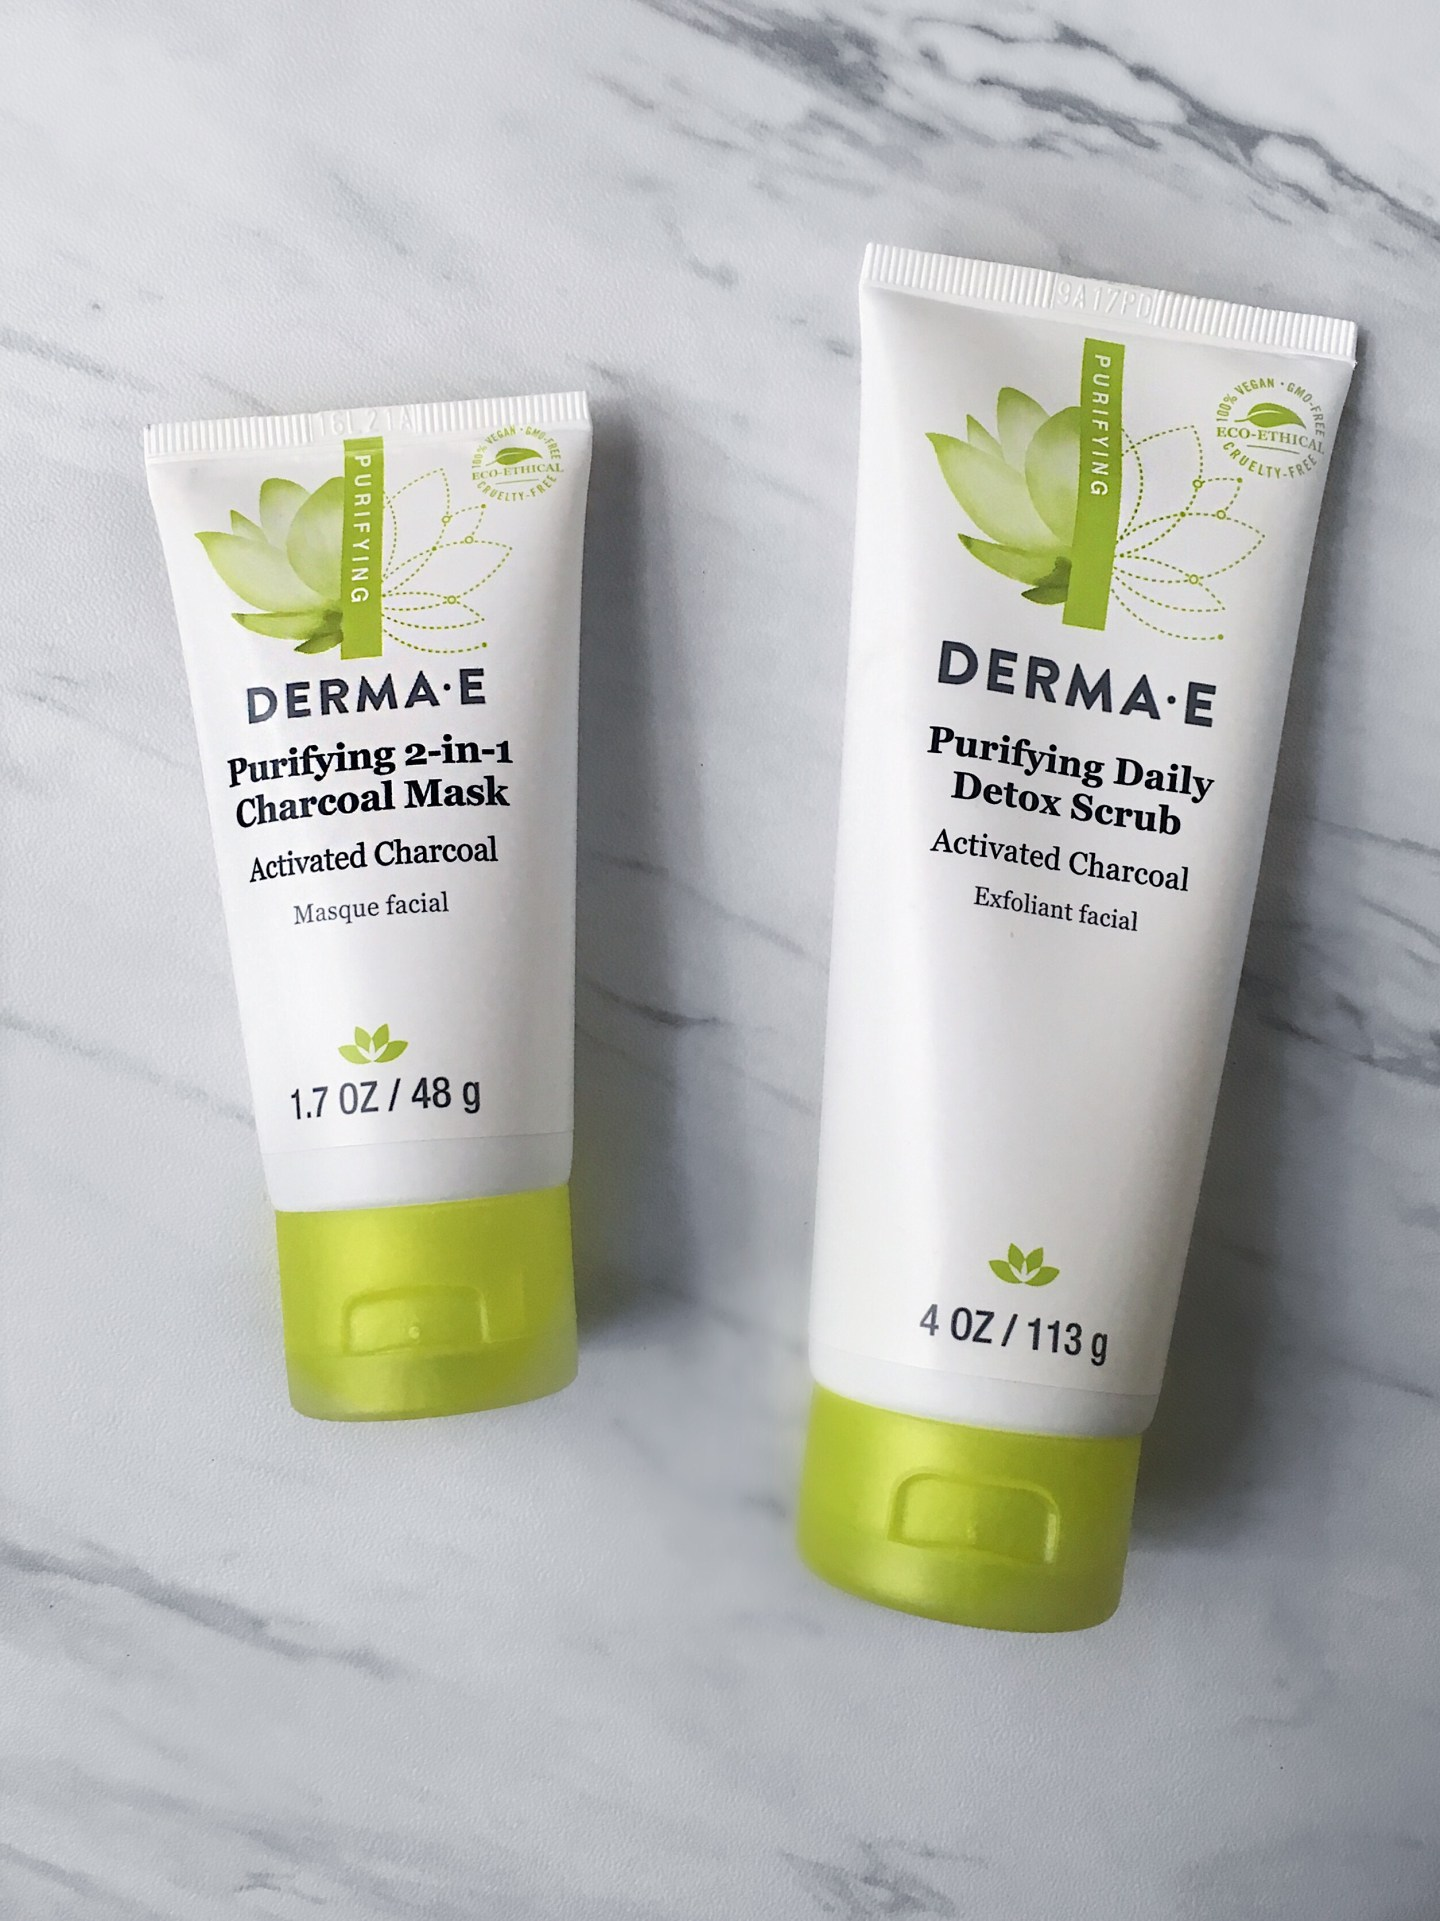 Trying Aloe & Charcoal Skincare | DERMA-E Review